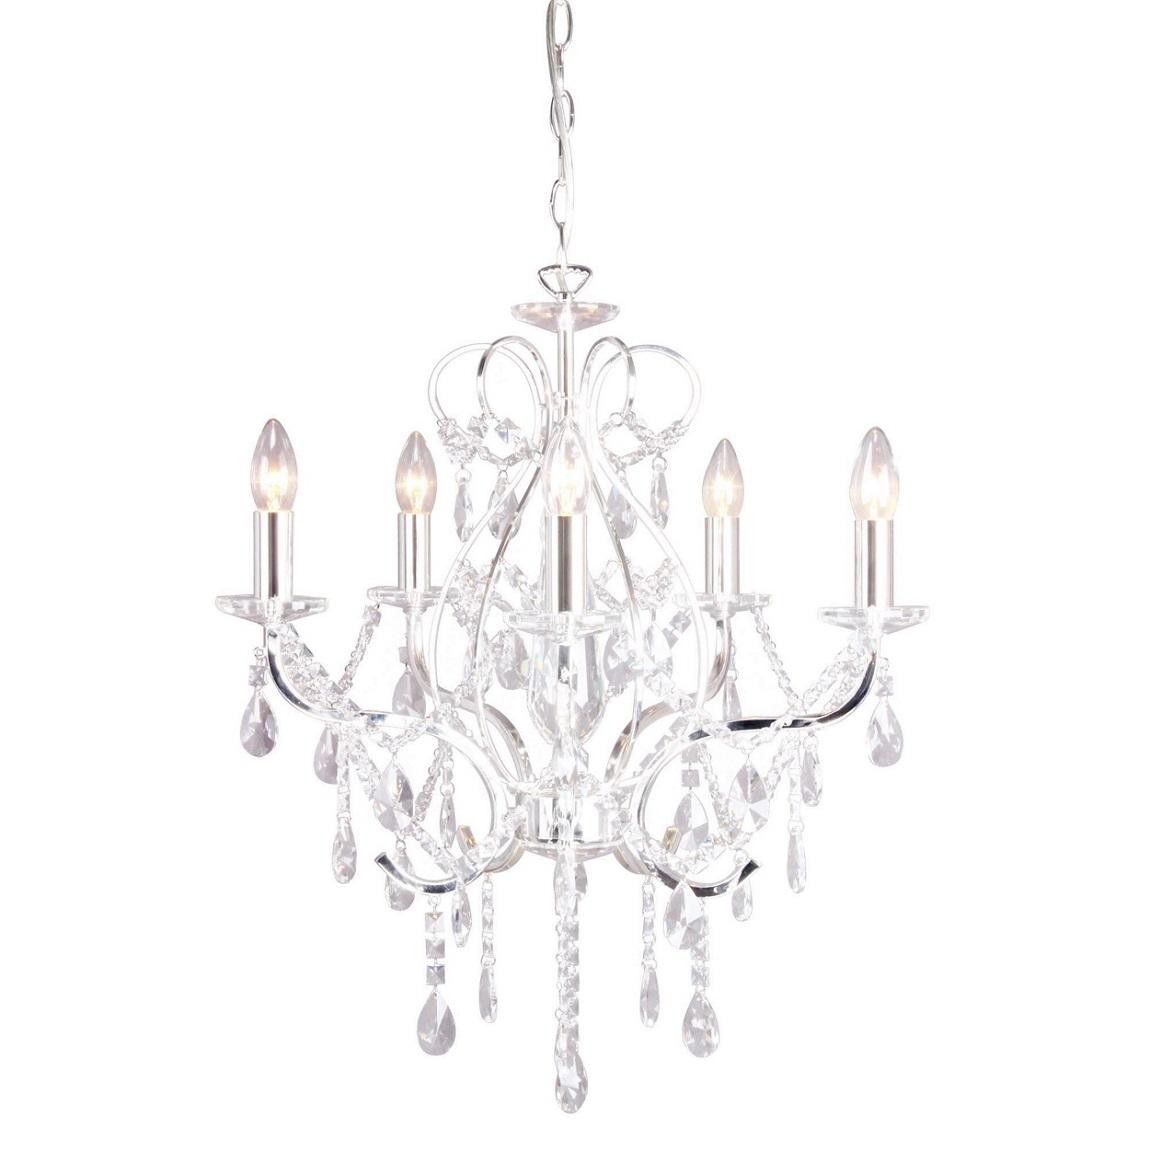 Debenhams Home Collection 'Avery' Chandelier Ceiling Light